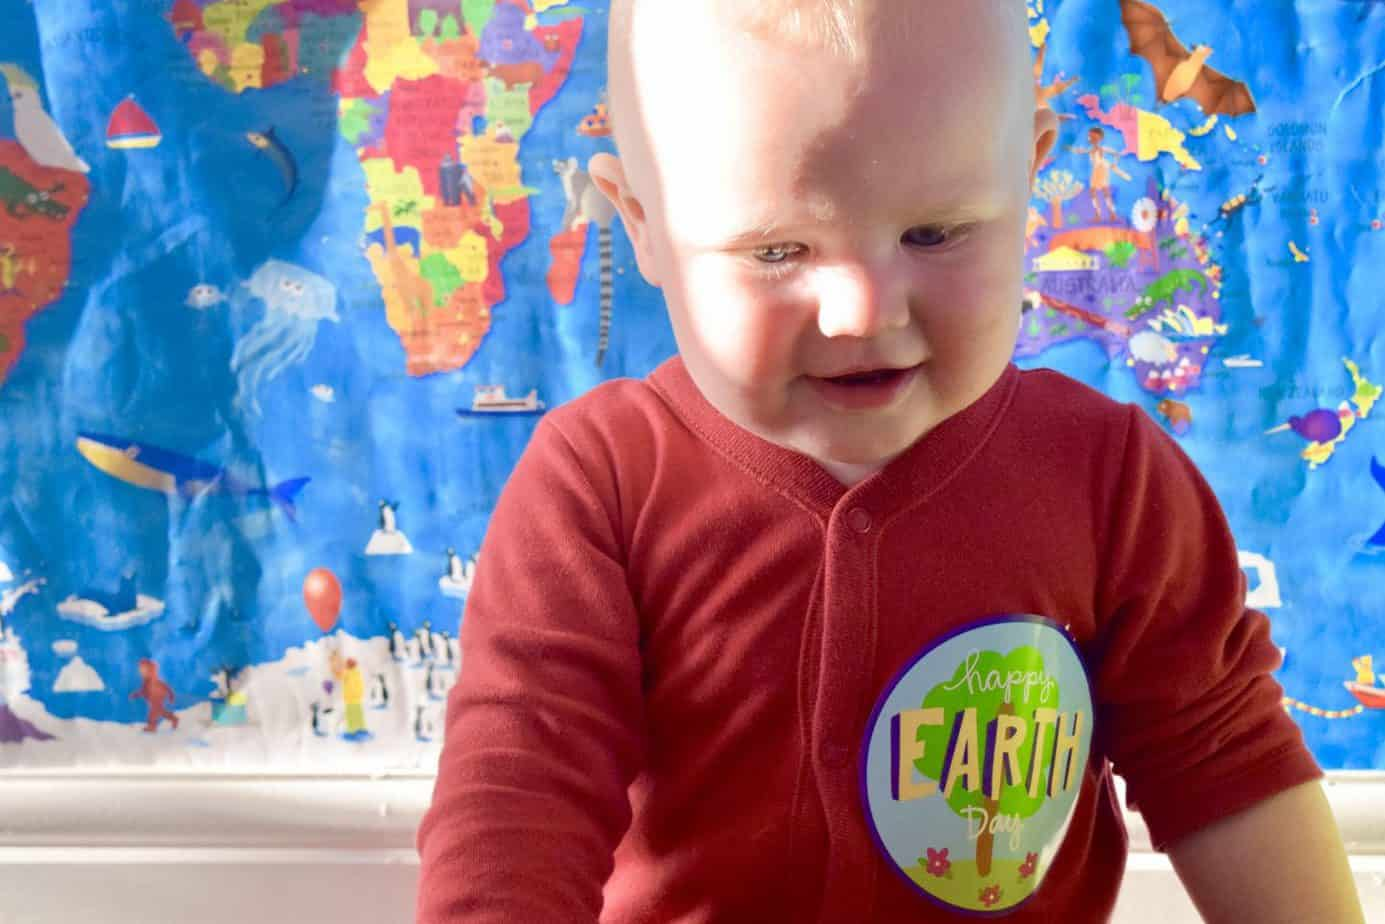 Baby K wearing an Happy Earth Day belly sticker in front of a picture of a map